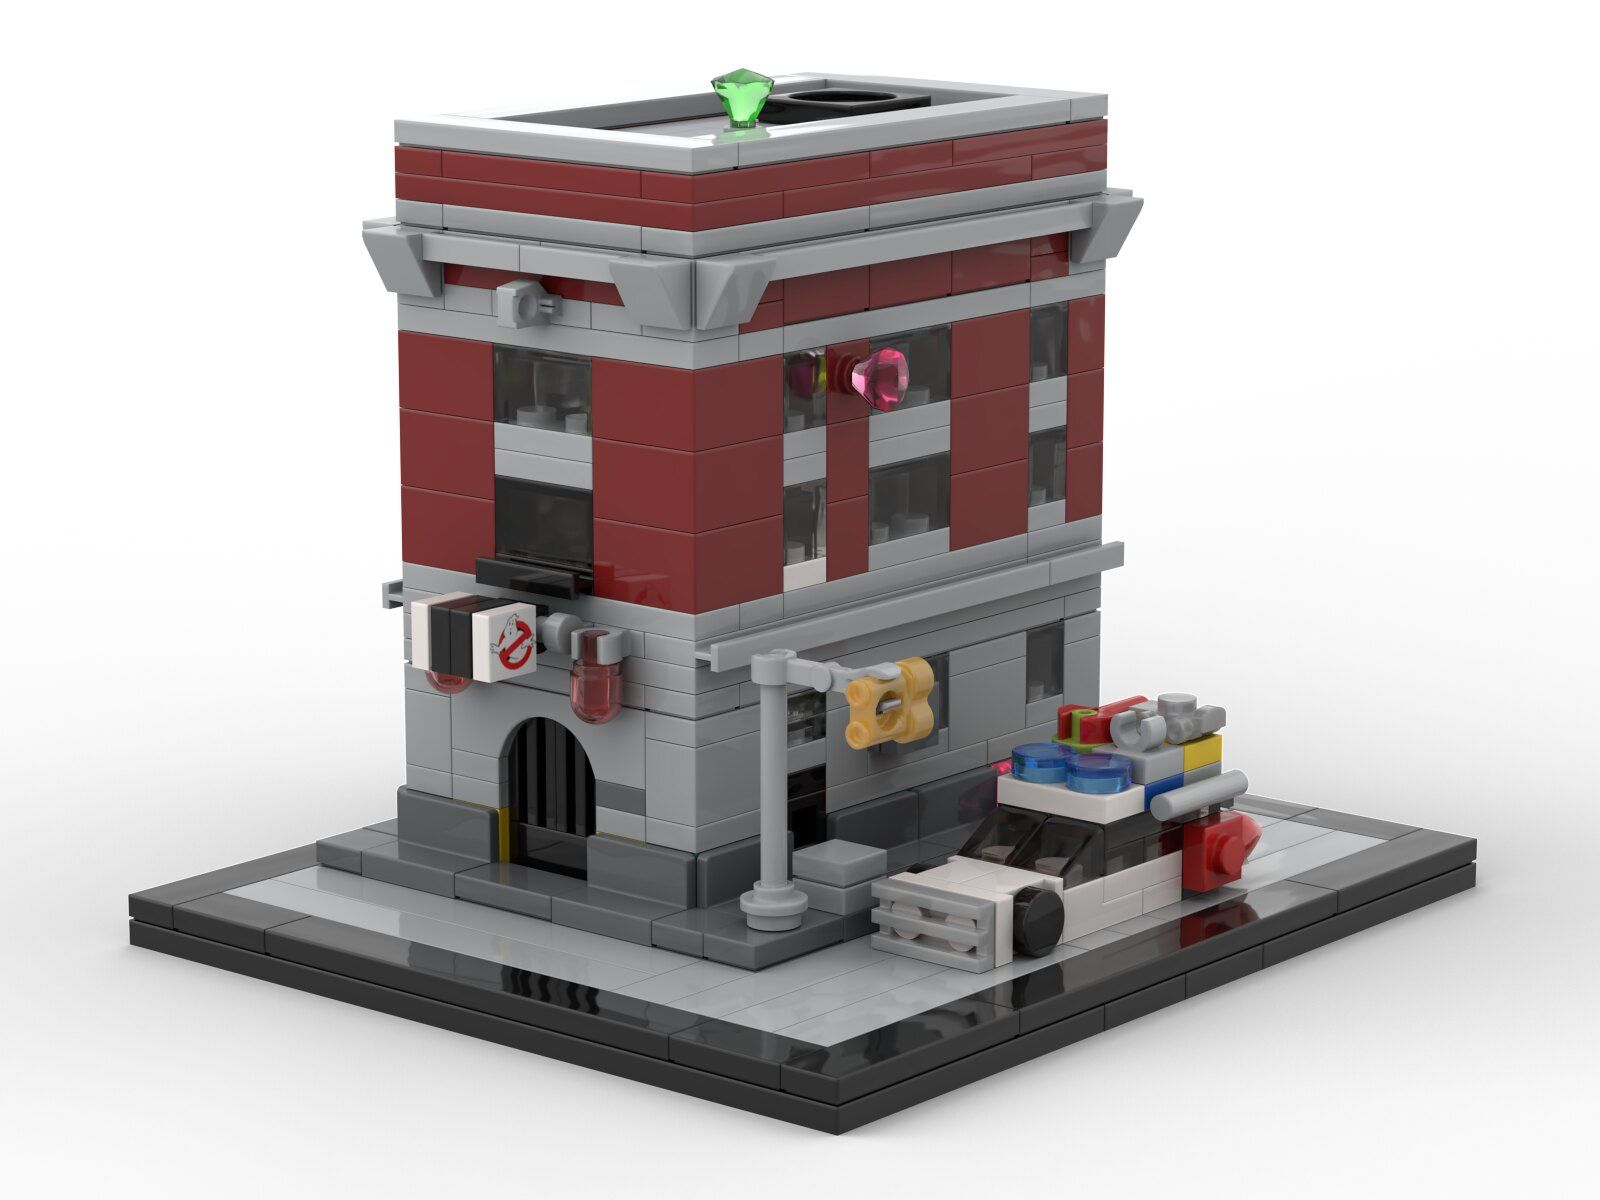 Lego Ghostbusters Firehouse Headquarters Architecture Micro Lego Lego Ghostbusters Firehouse